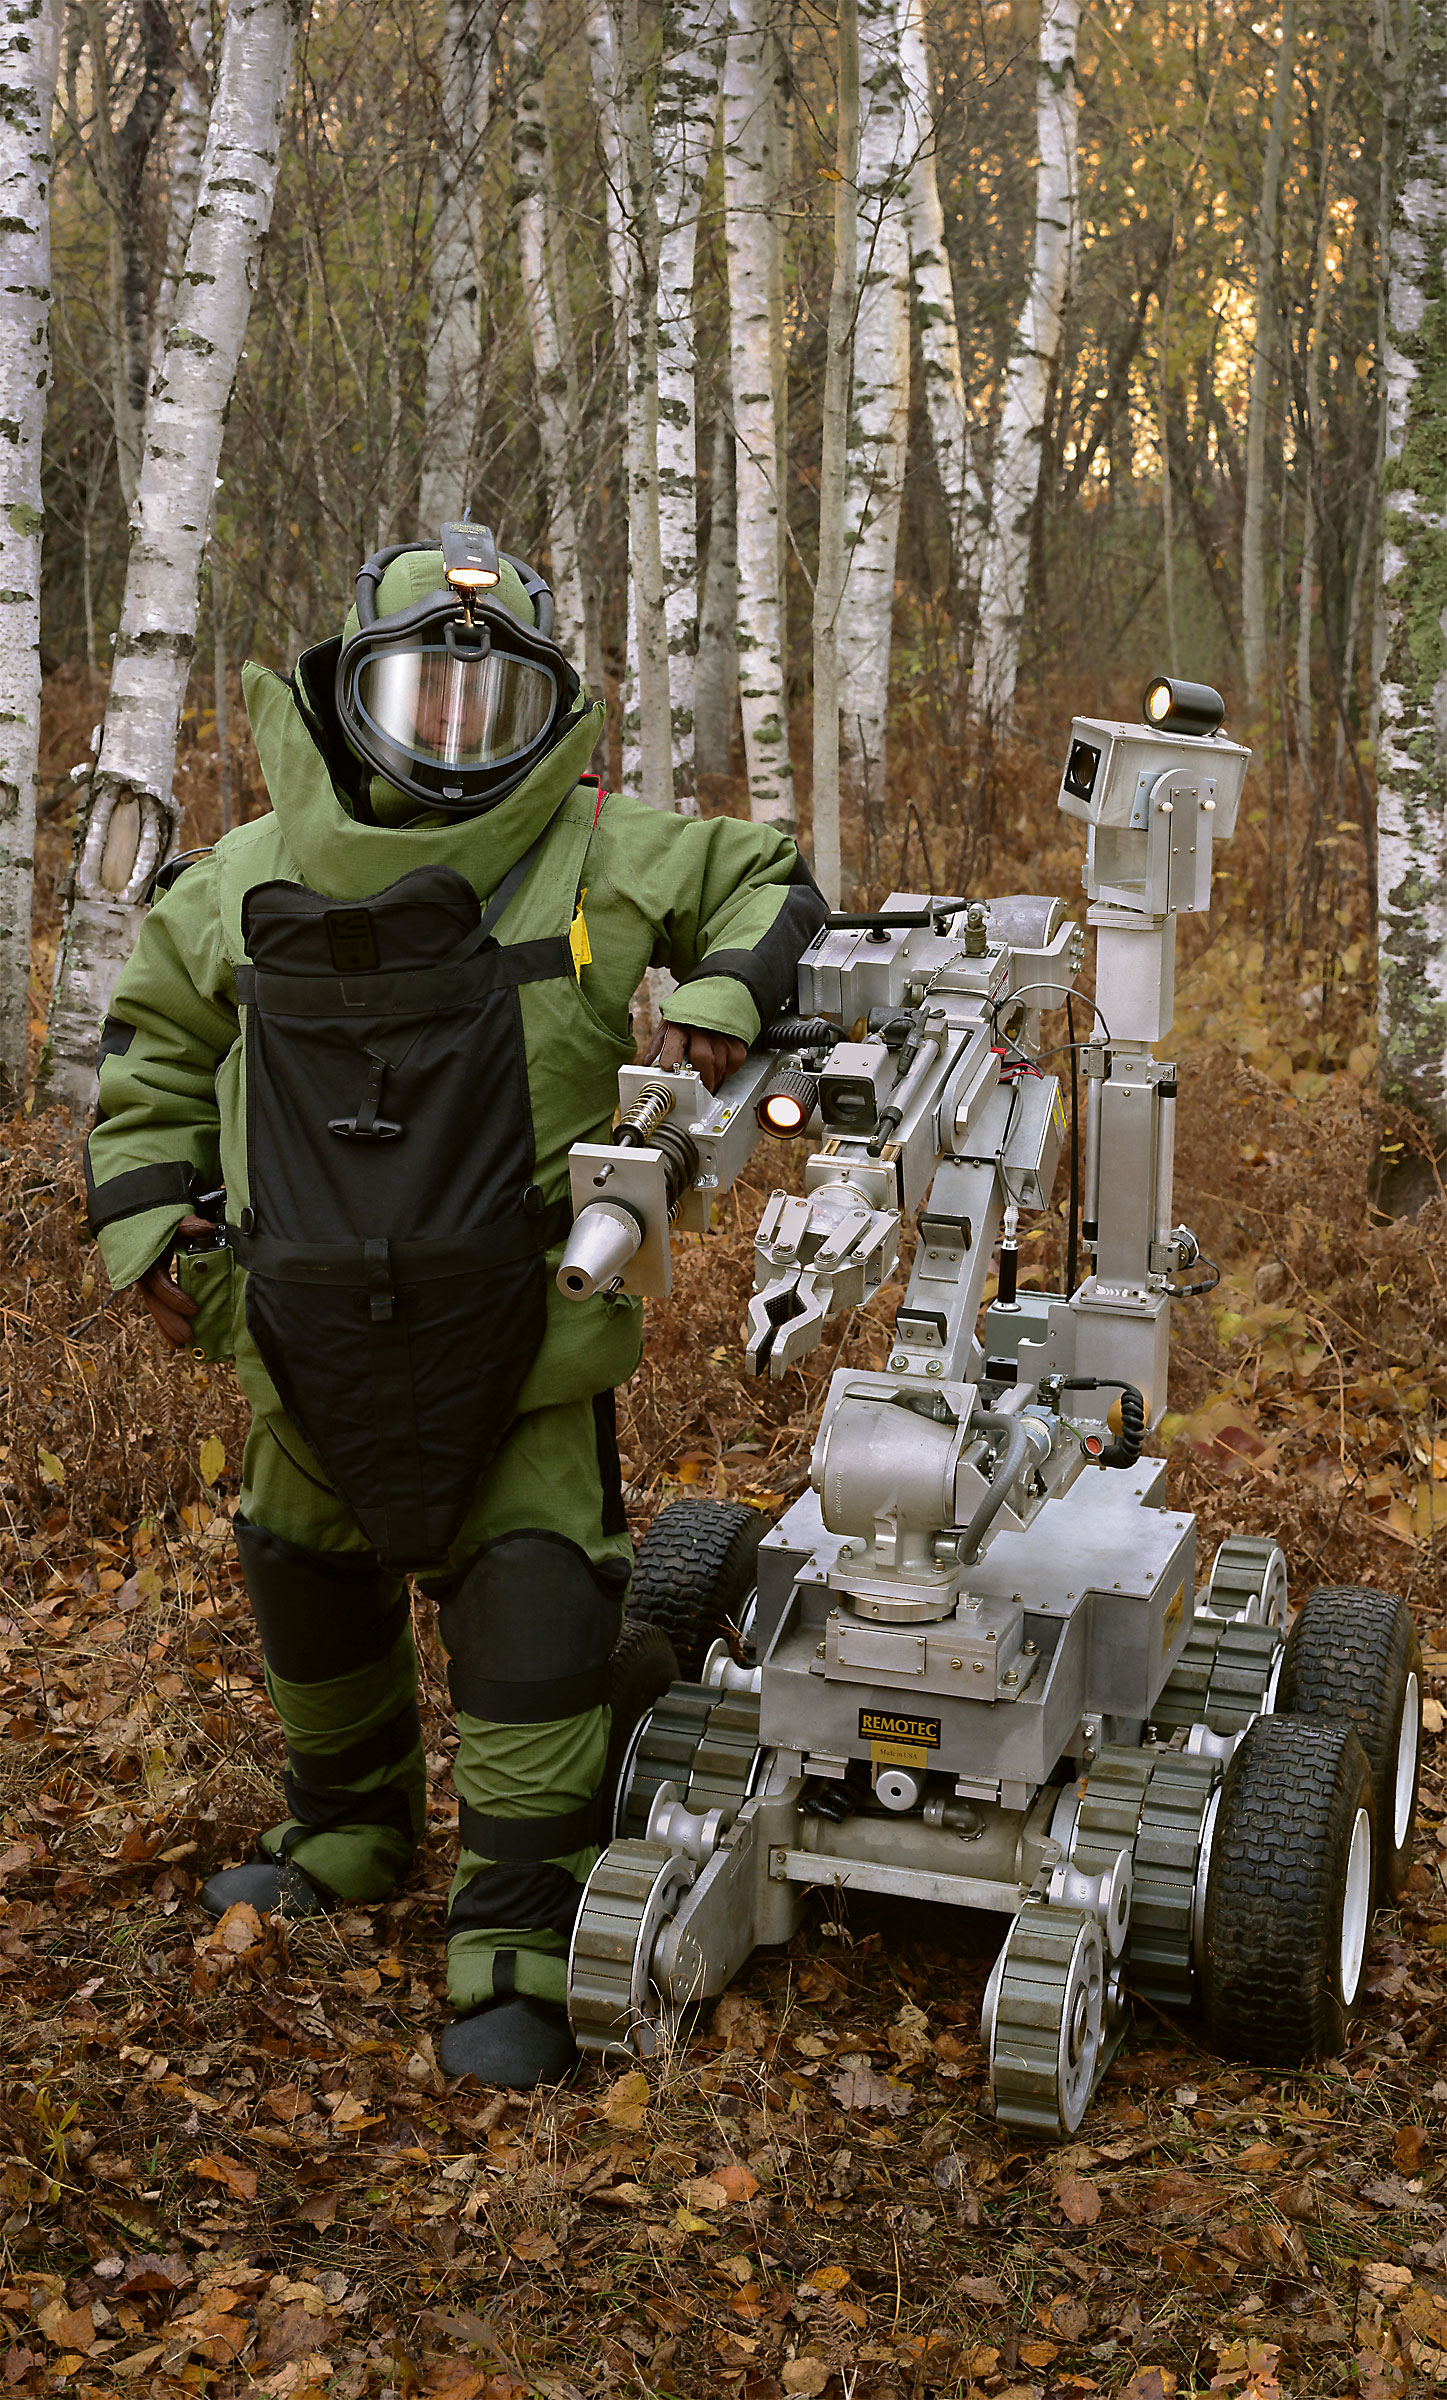 <p><em>Bomb suit, robot (148th Explosive Ordnance Disposal (EOD), Minnesota Air National Guard, Duluth, MN)</em>, 2005, pigmented inkjet on canvas with varnish, 63X38 inches</p>